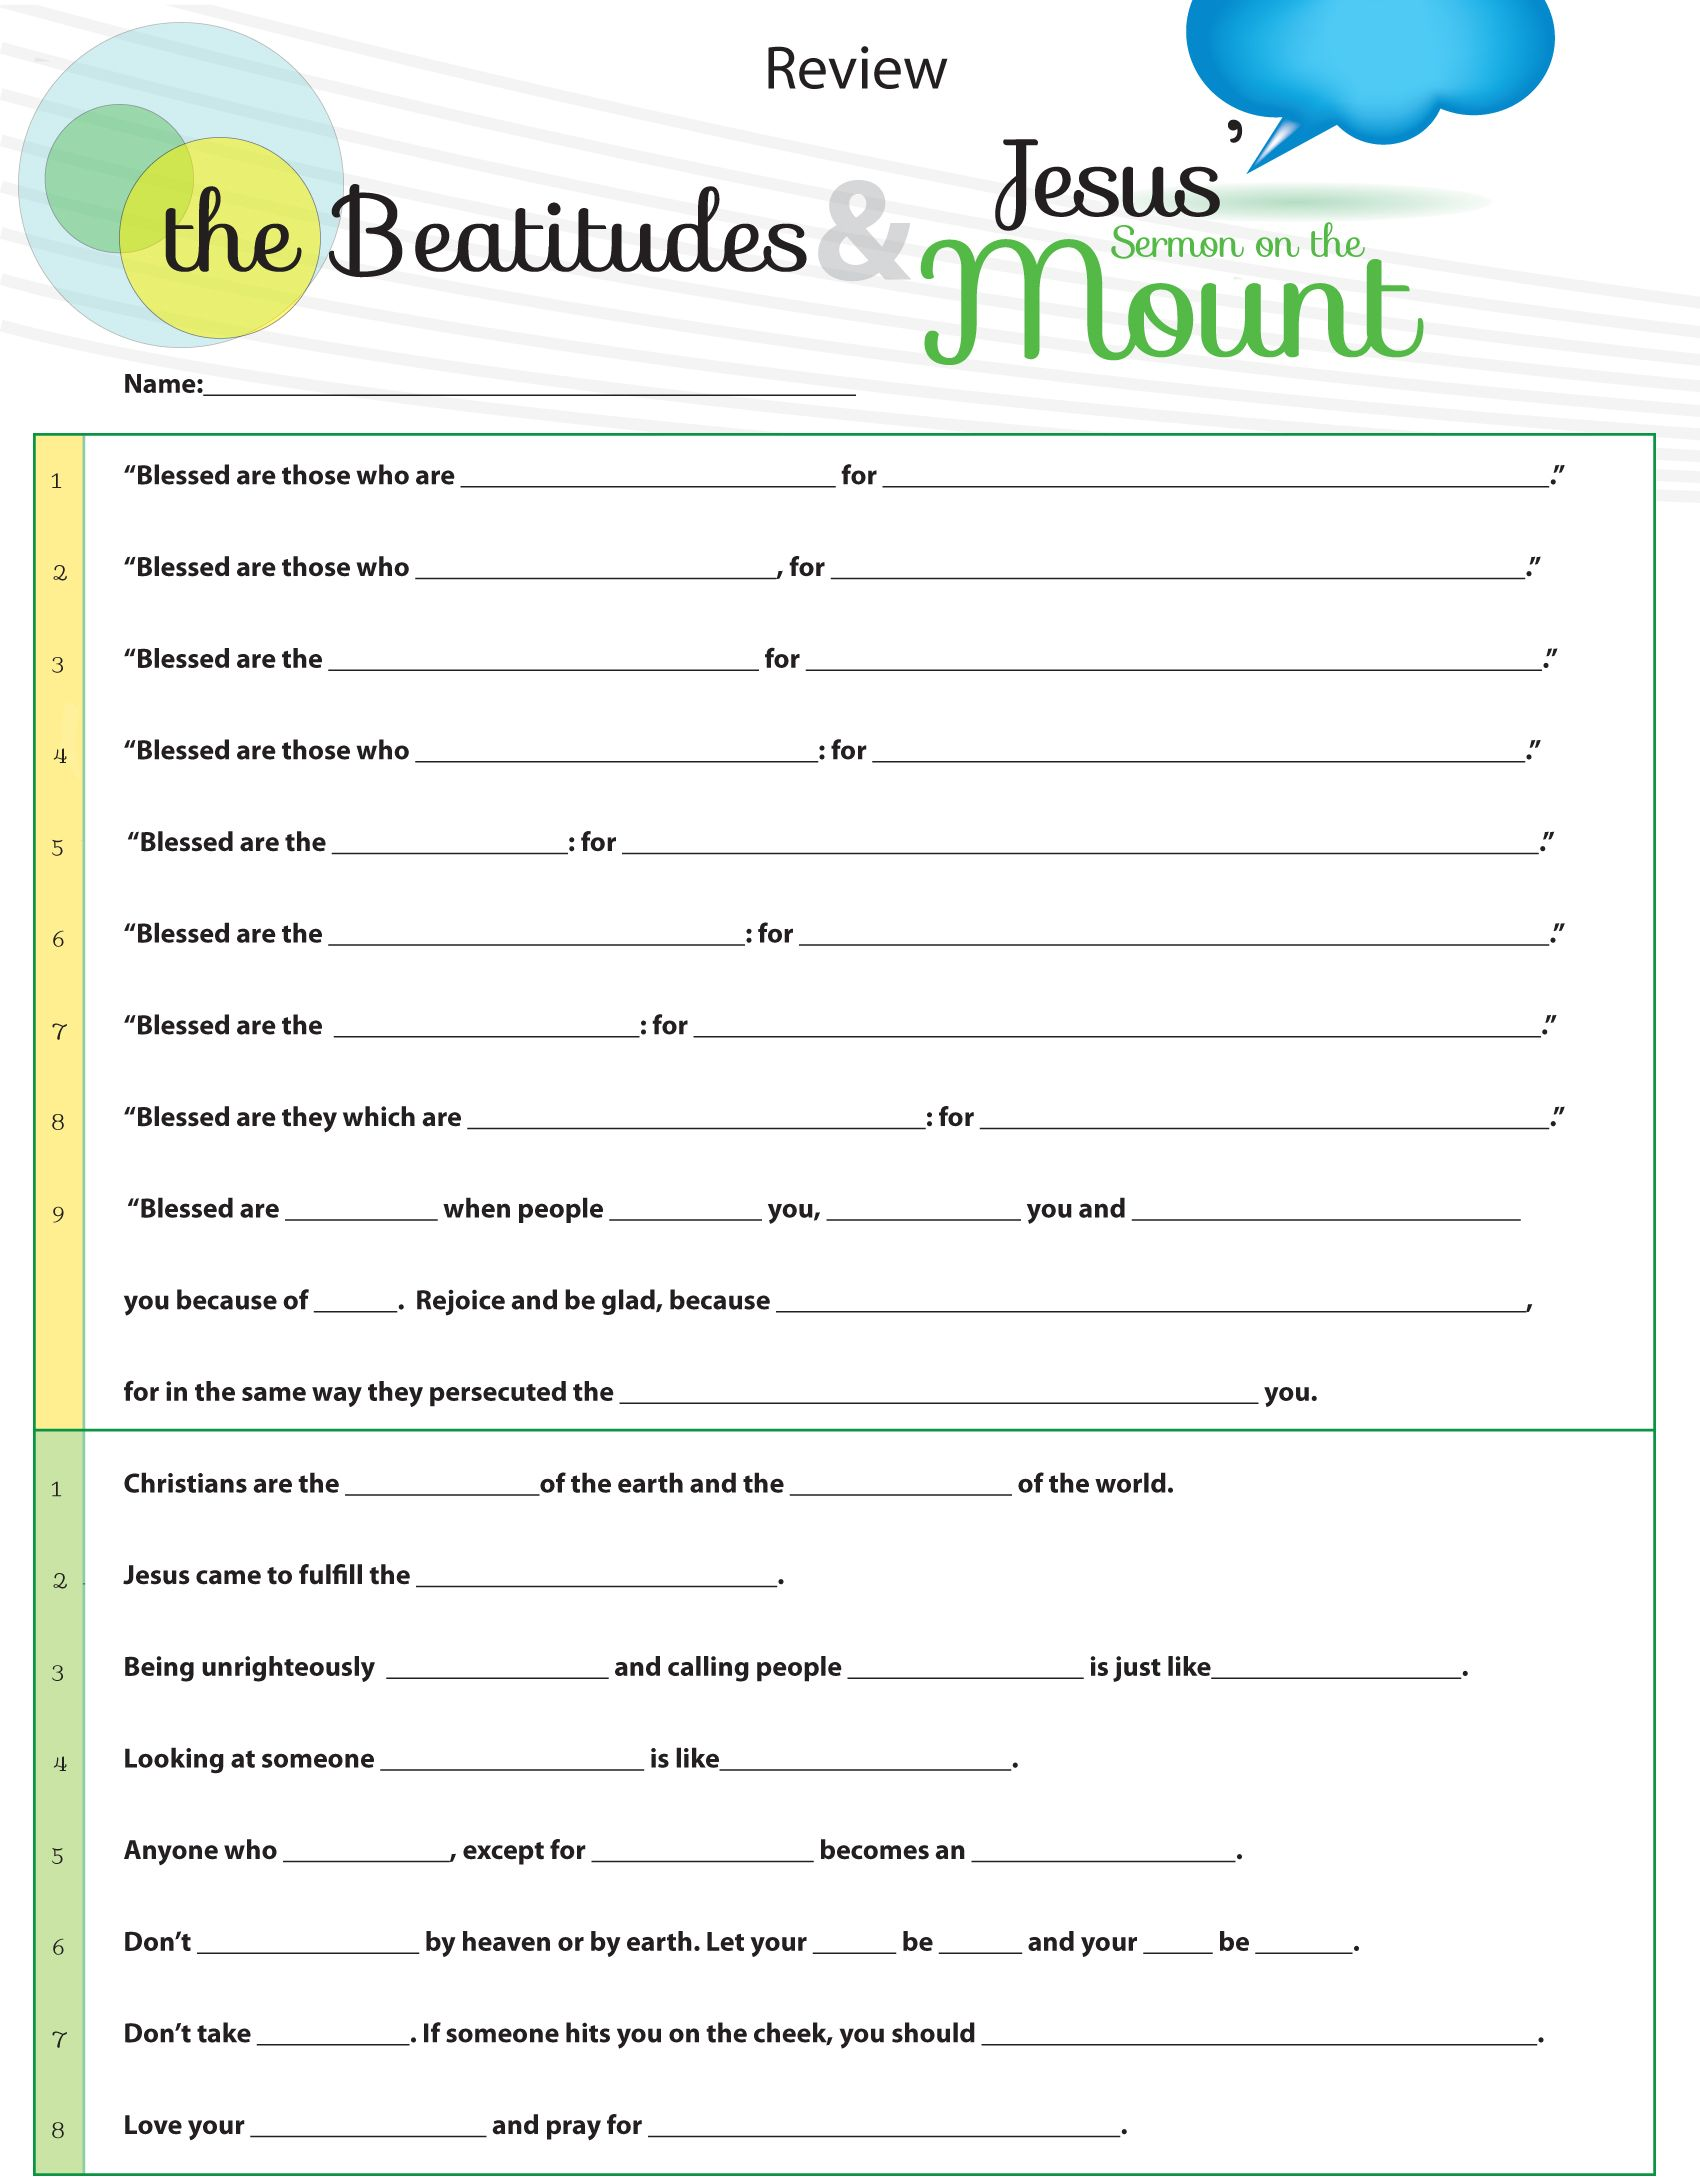 Worksheets Beatitudes Worksheet 11 beatitudes activity ideas printable worksheets from the worksheet to teach jesus sermon on mount matthew chapter 5 overview with fill